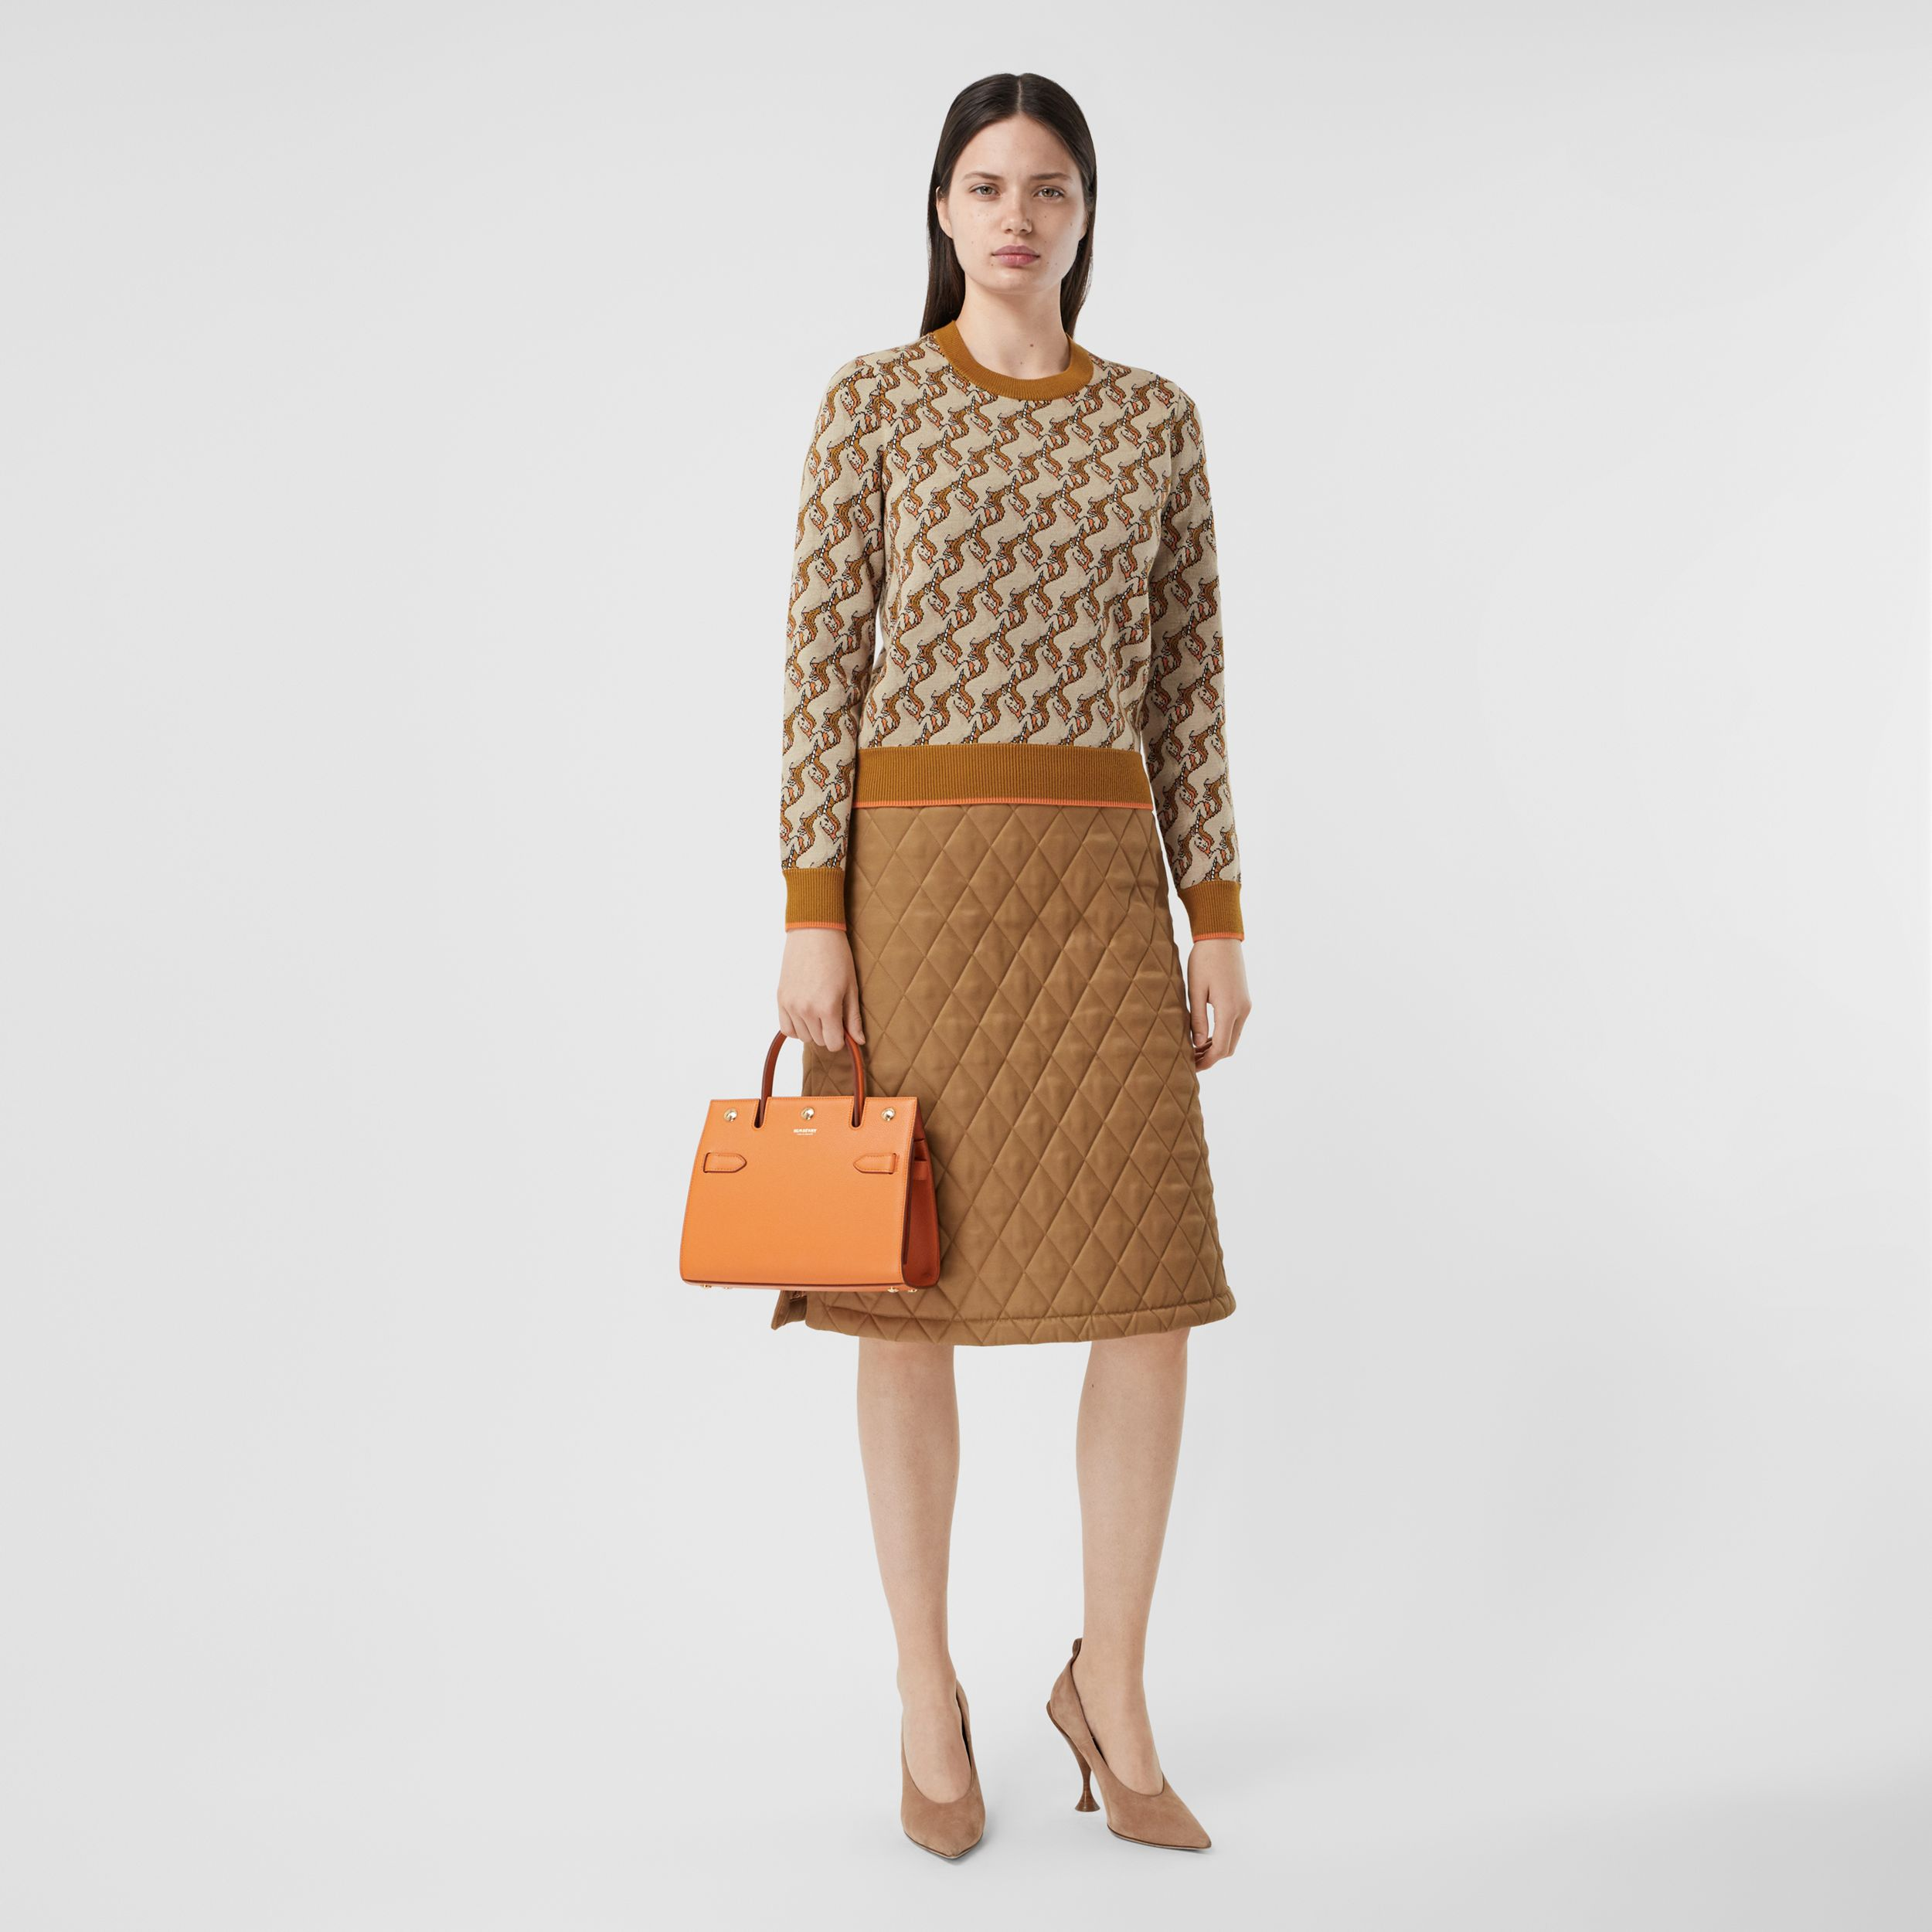 Unicorn Merino Wool Blend Jacquard Sweater in Ecru - Women | Burberry - 1